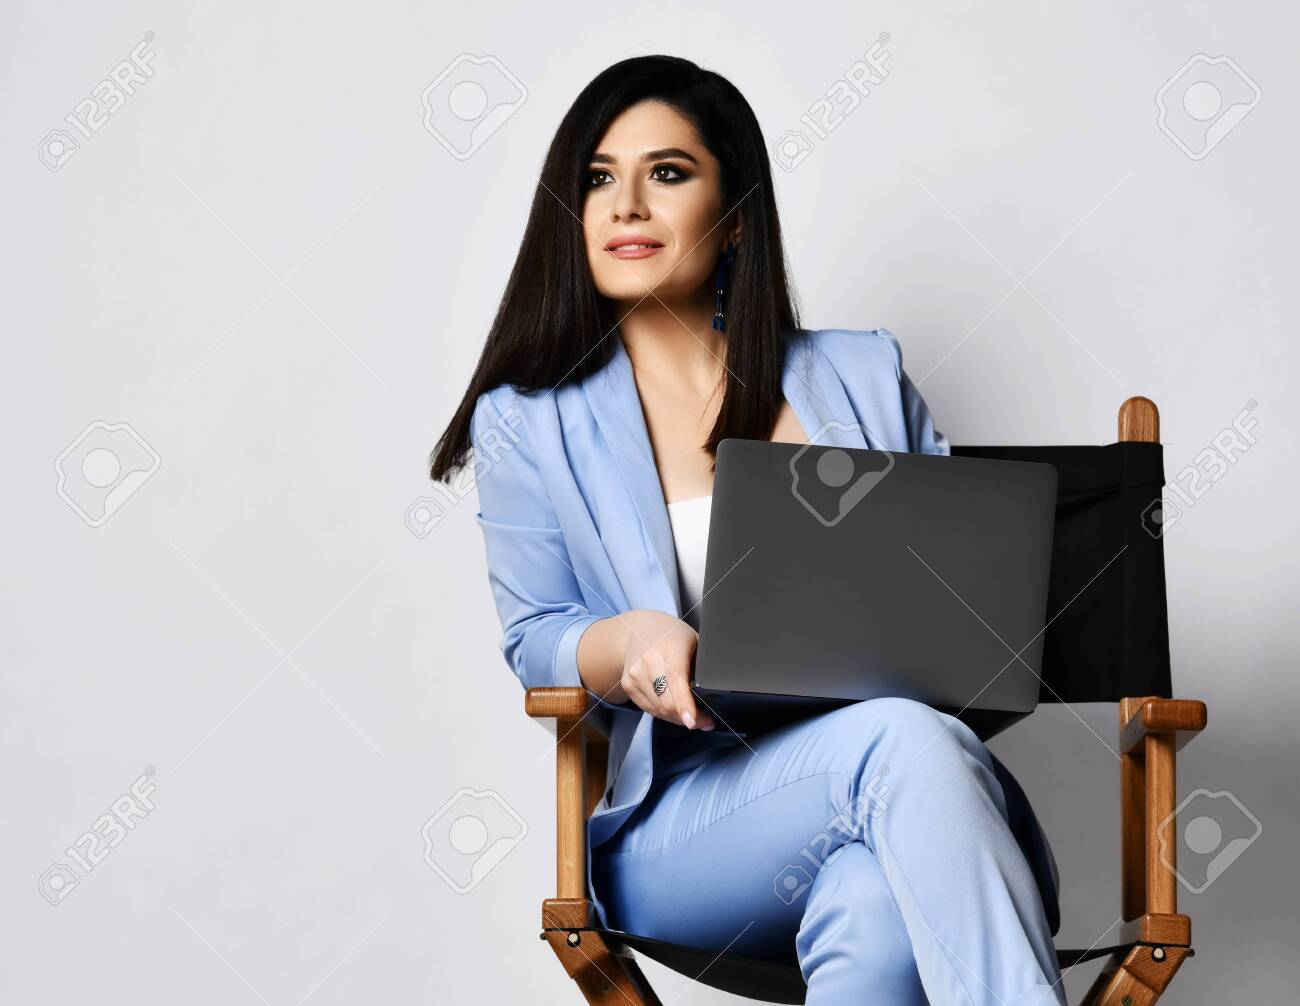 Stylish business woman in blue official pantsuit sitting with black laptop on wooden armchair and looks with interest at something on the side of her on free text copy space - 148317010